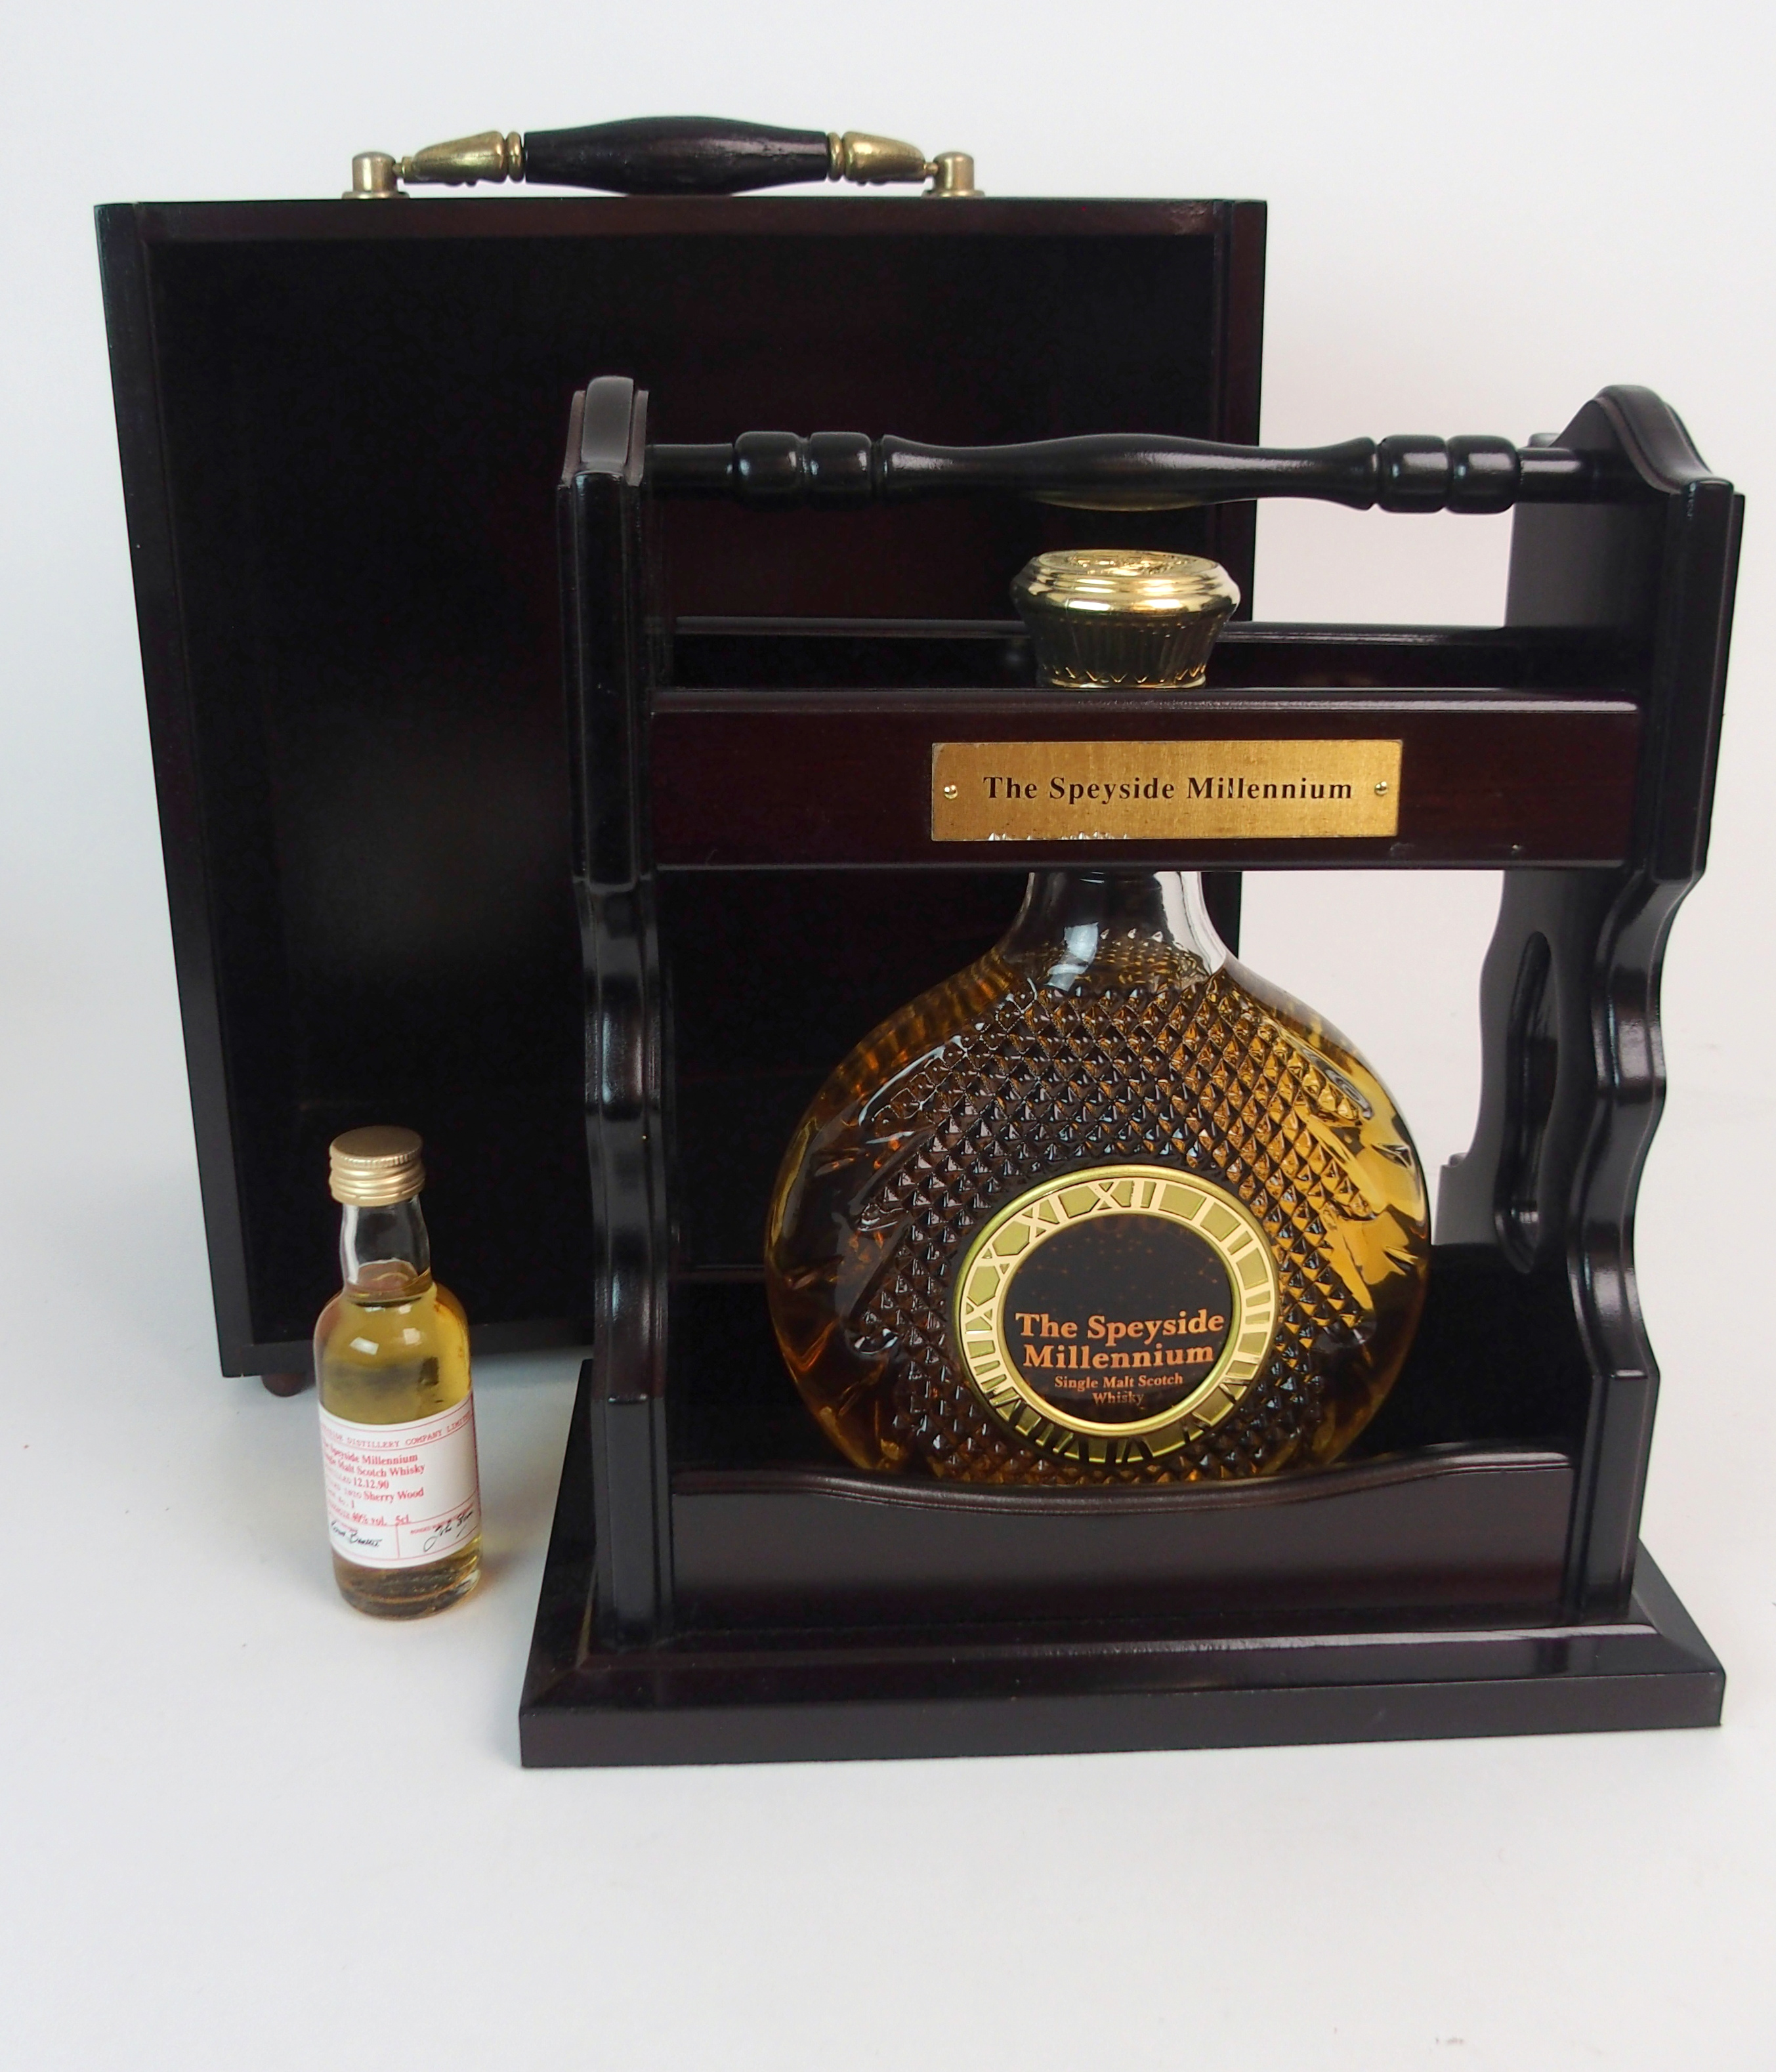 THE SPEYSIDE MILLENIUM SINGLE MALT WHISKY in Tantalus stand, with case, No. 308 with - Image 2 of 5